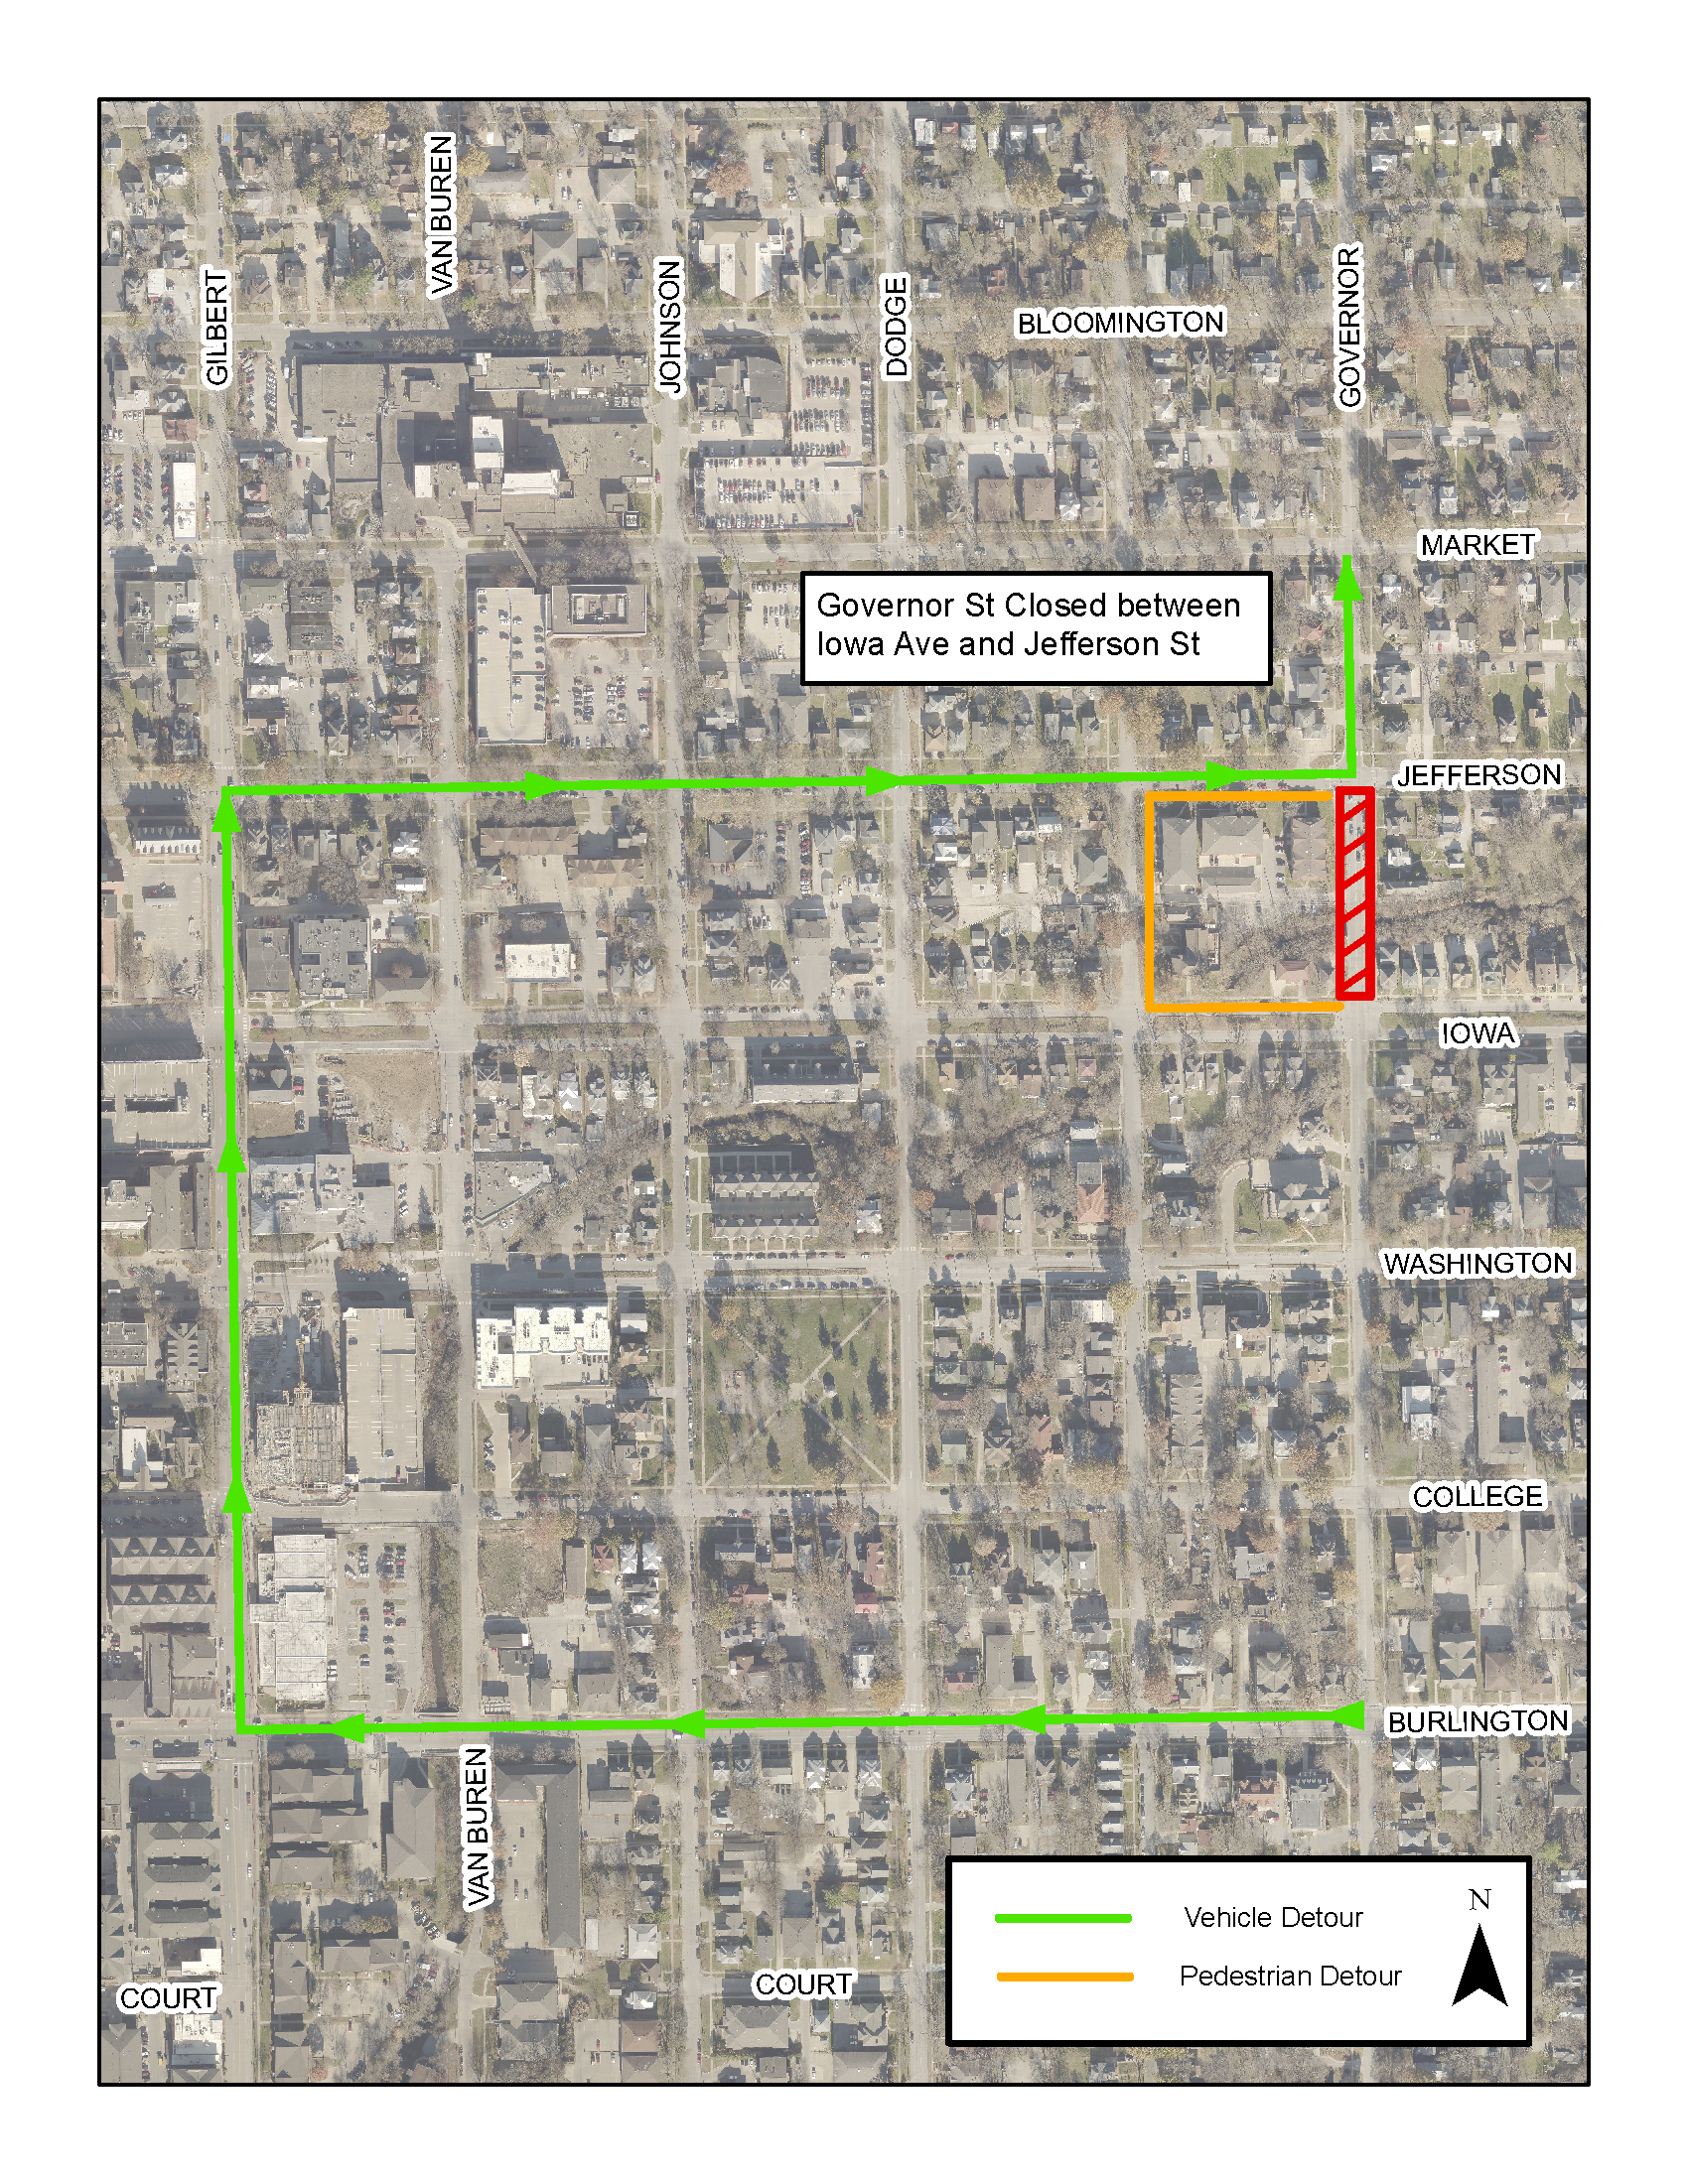 A detour map for the Governor Street bridge closure.